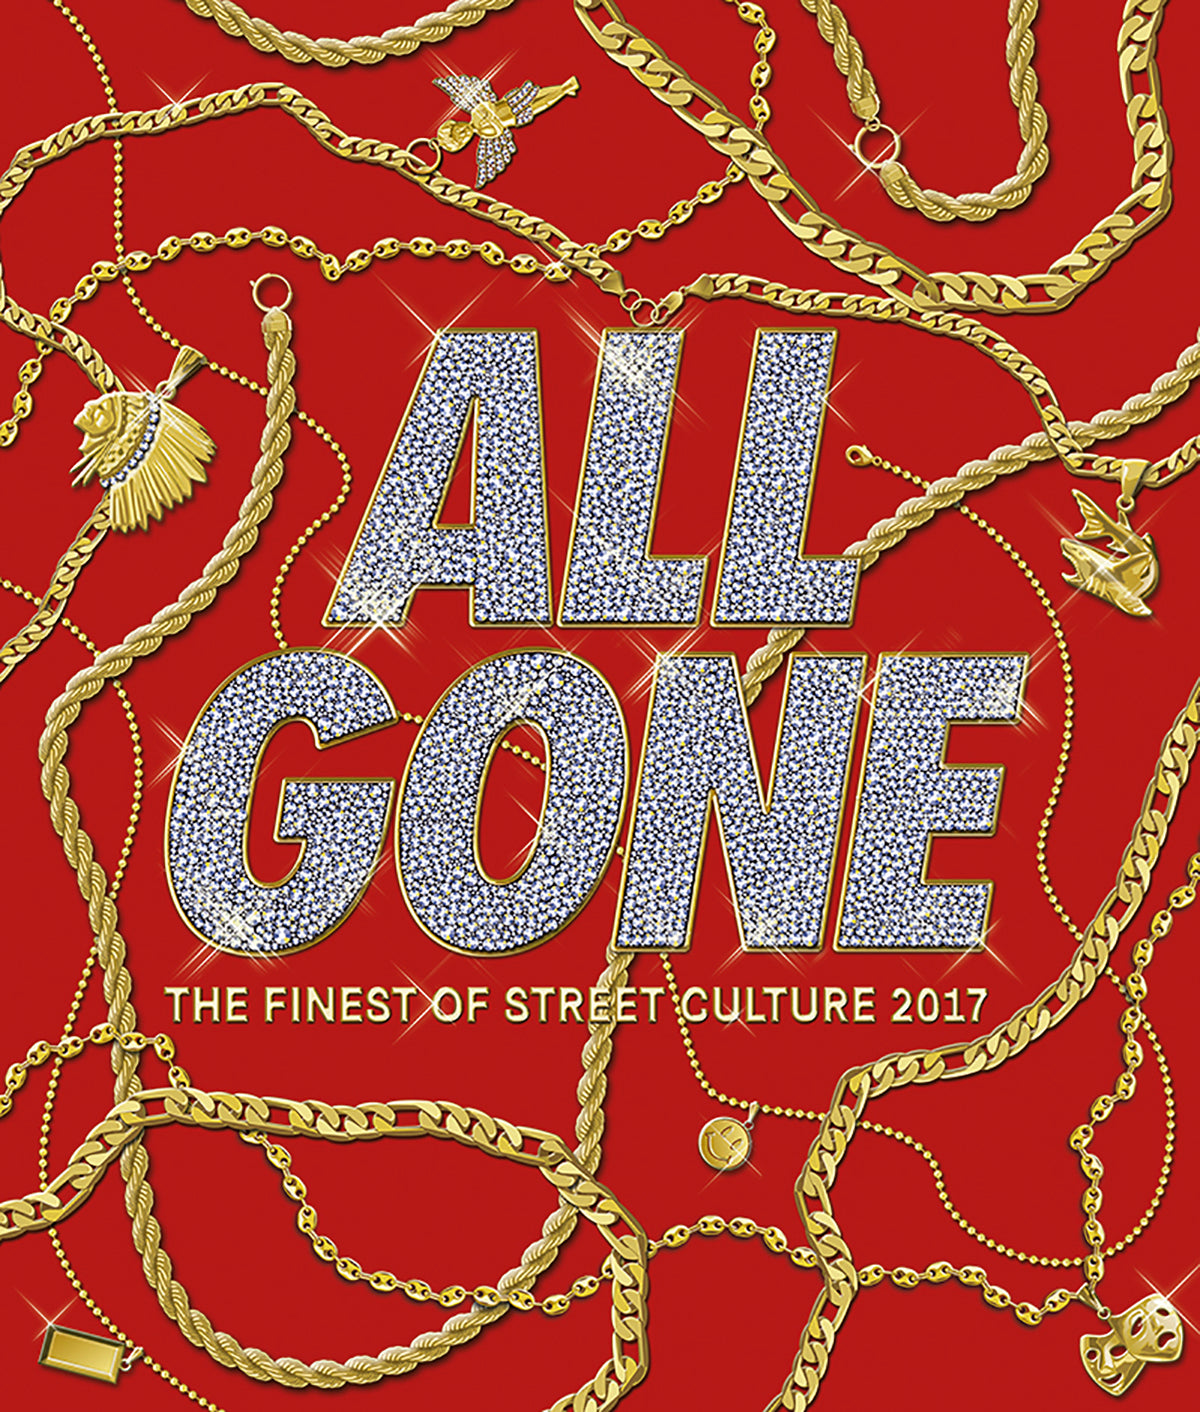 ALL GONE: The History Book on Street Culture